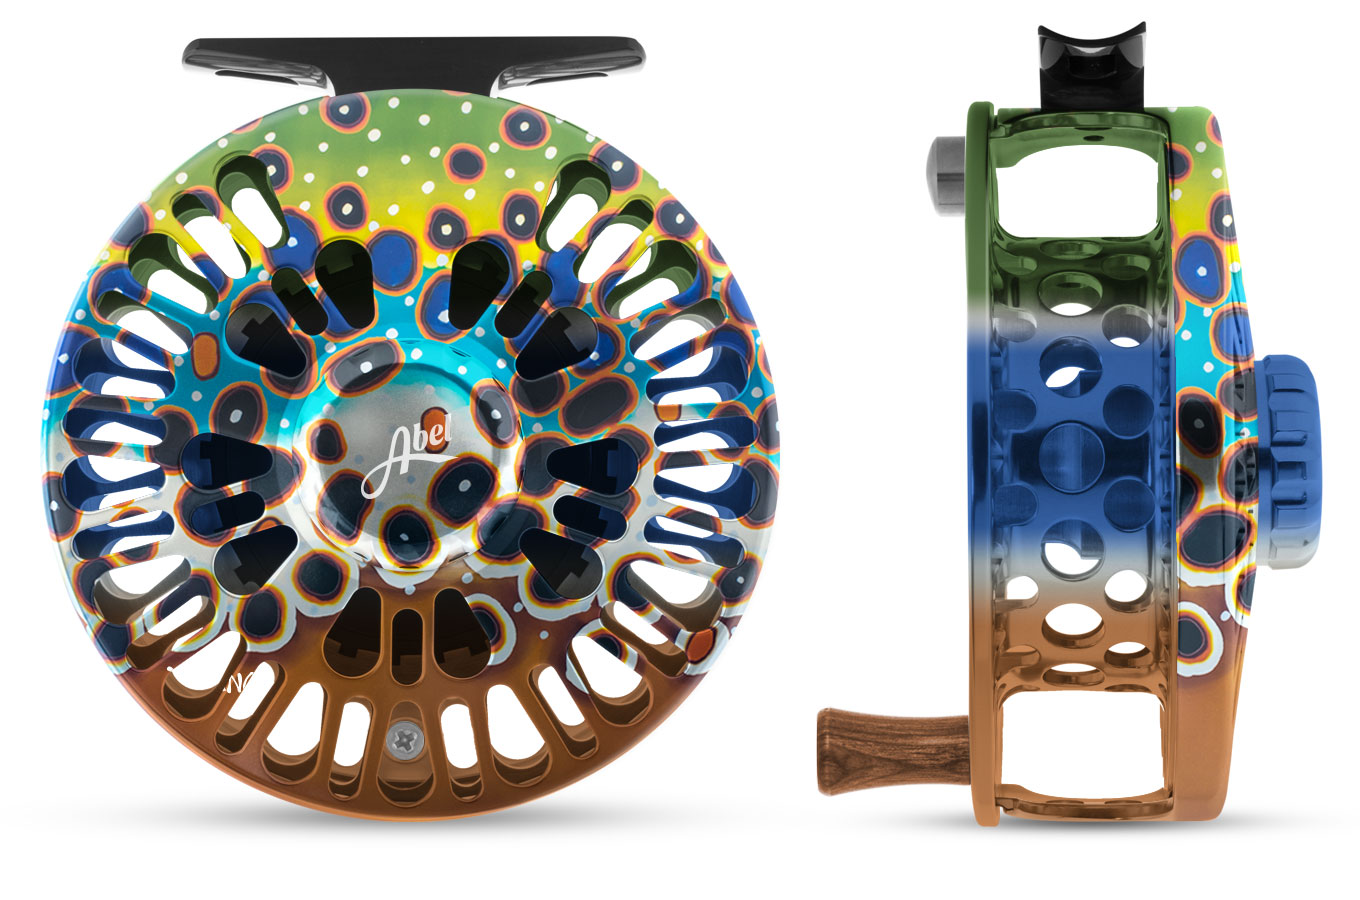 abel super series reel